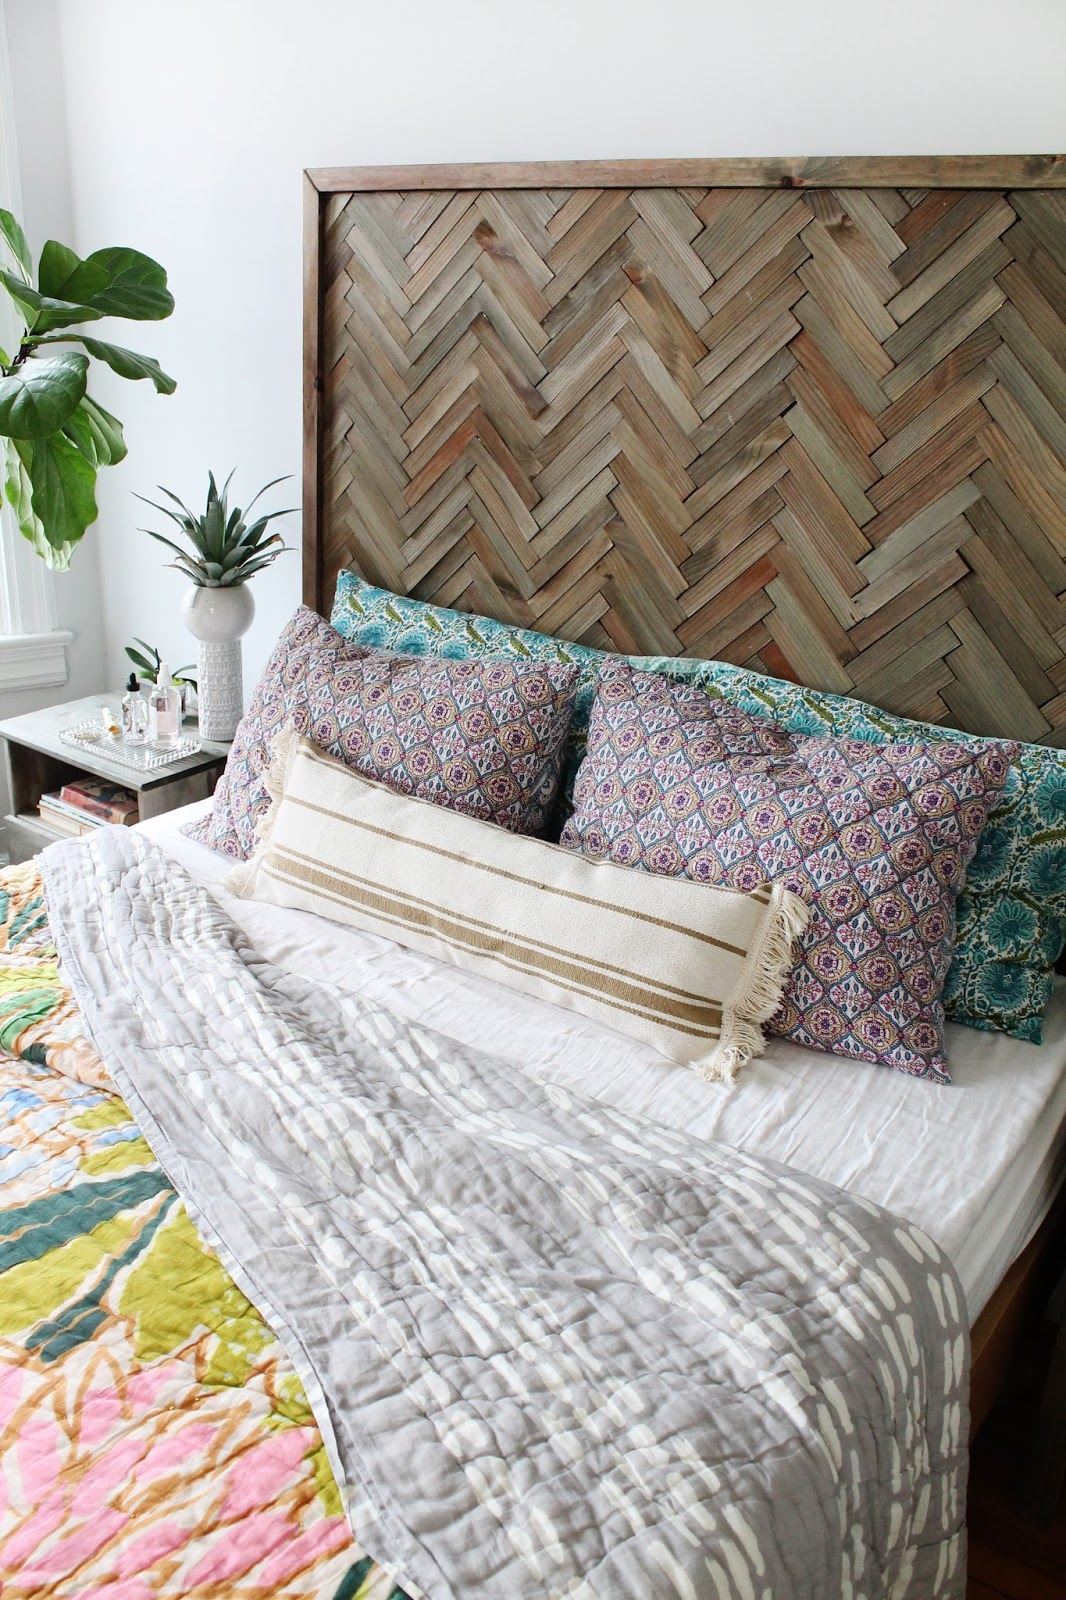 Create A Herringbone Wood Headboard